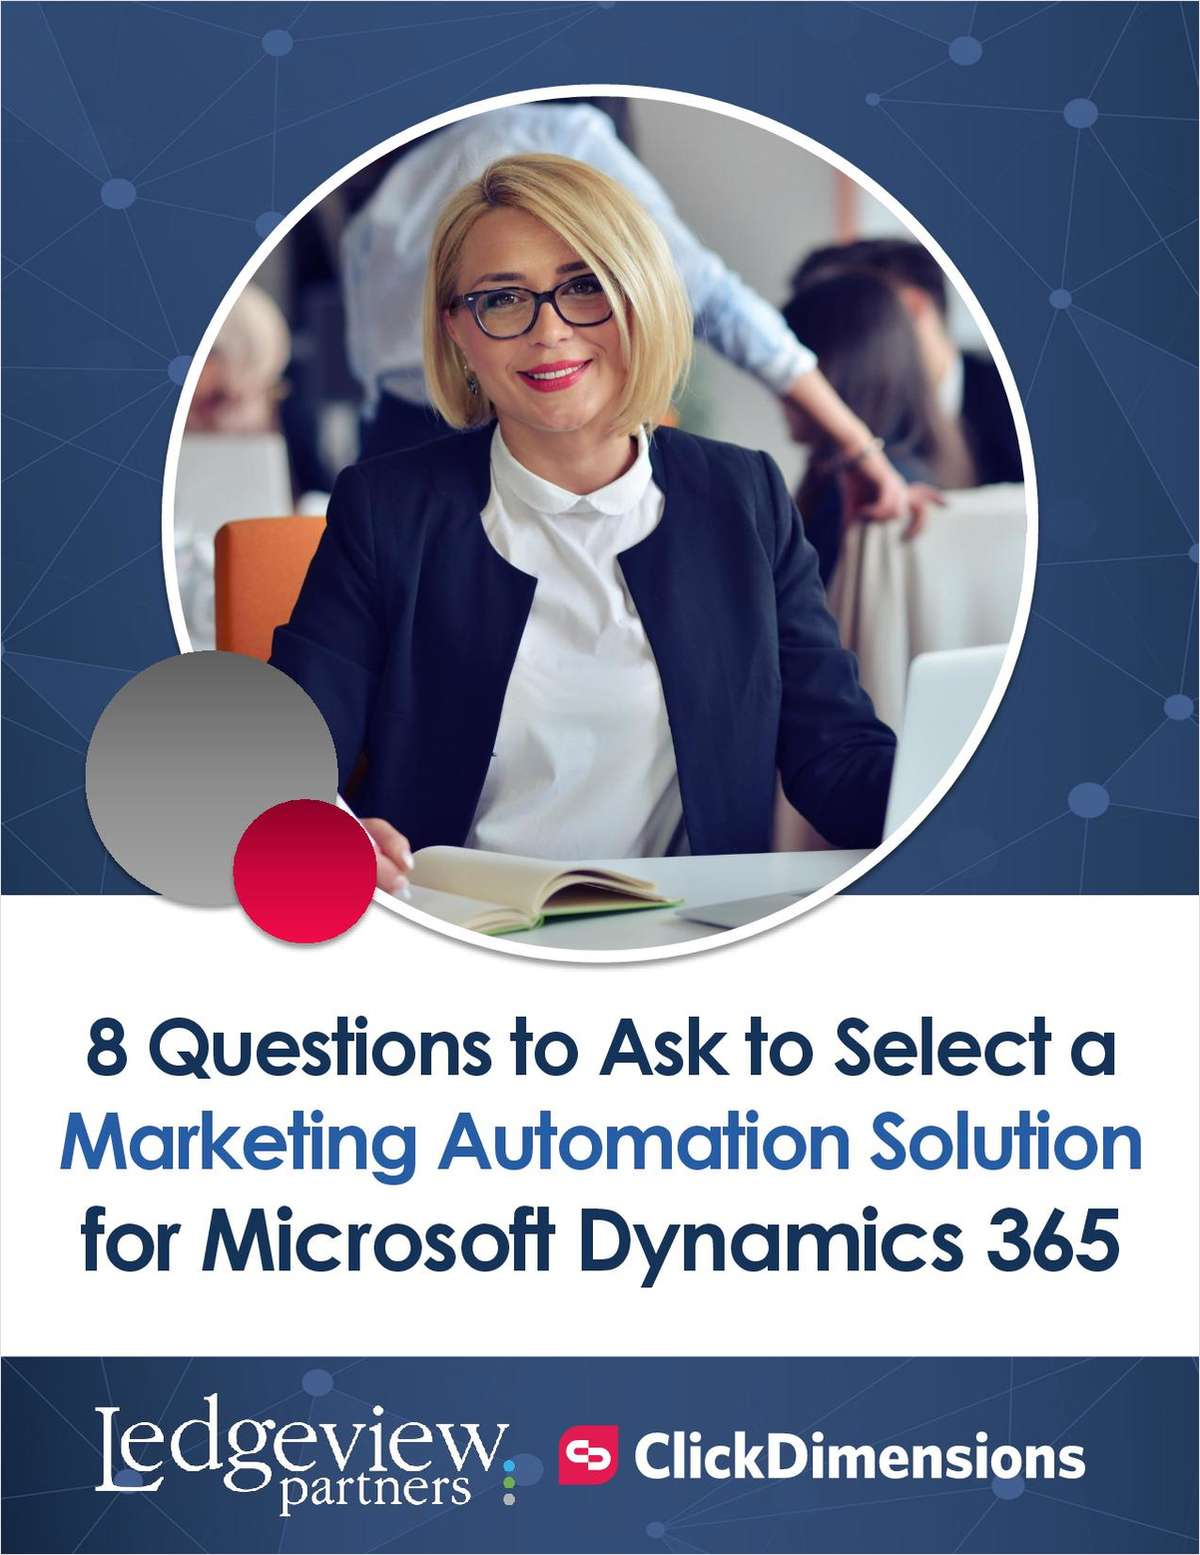 8 Questions to Ask to Select a Marketing Automation Solution for Microsoft Dynamics 365